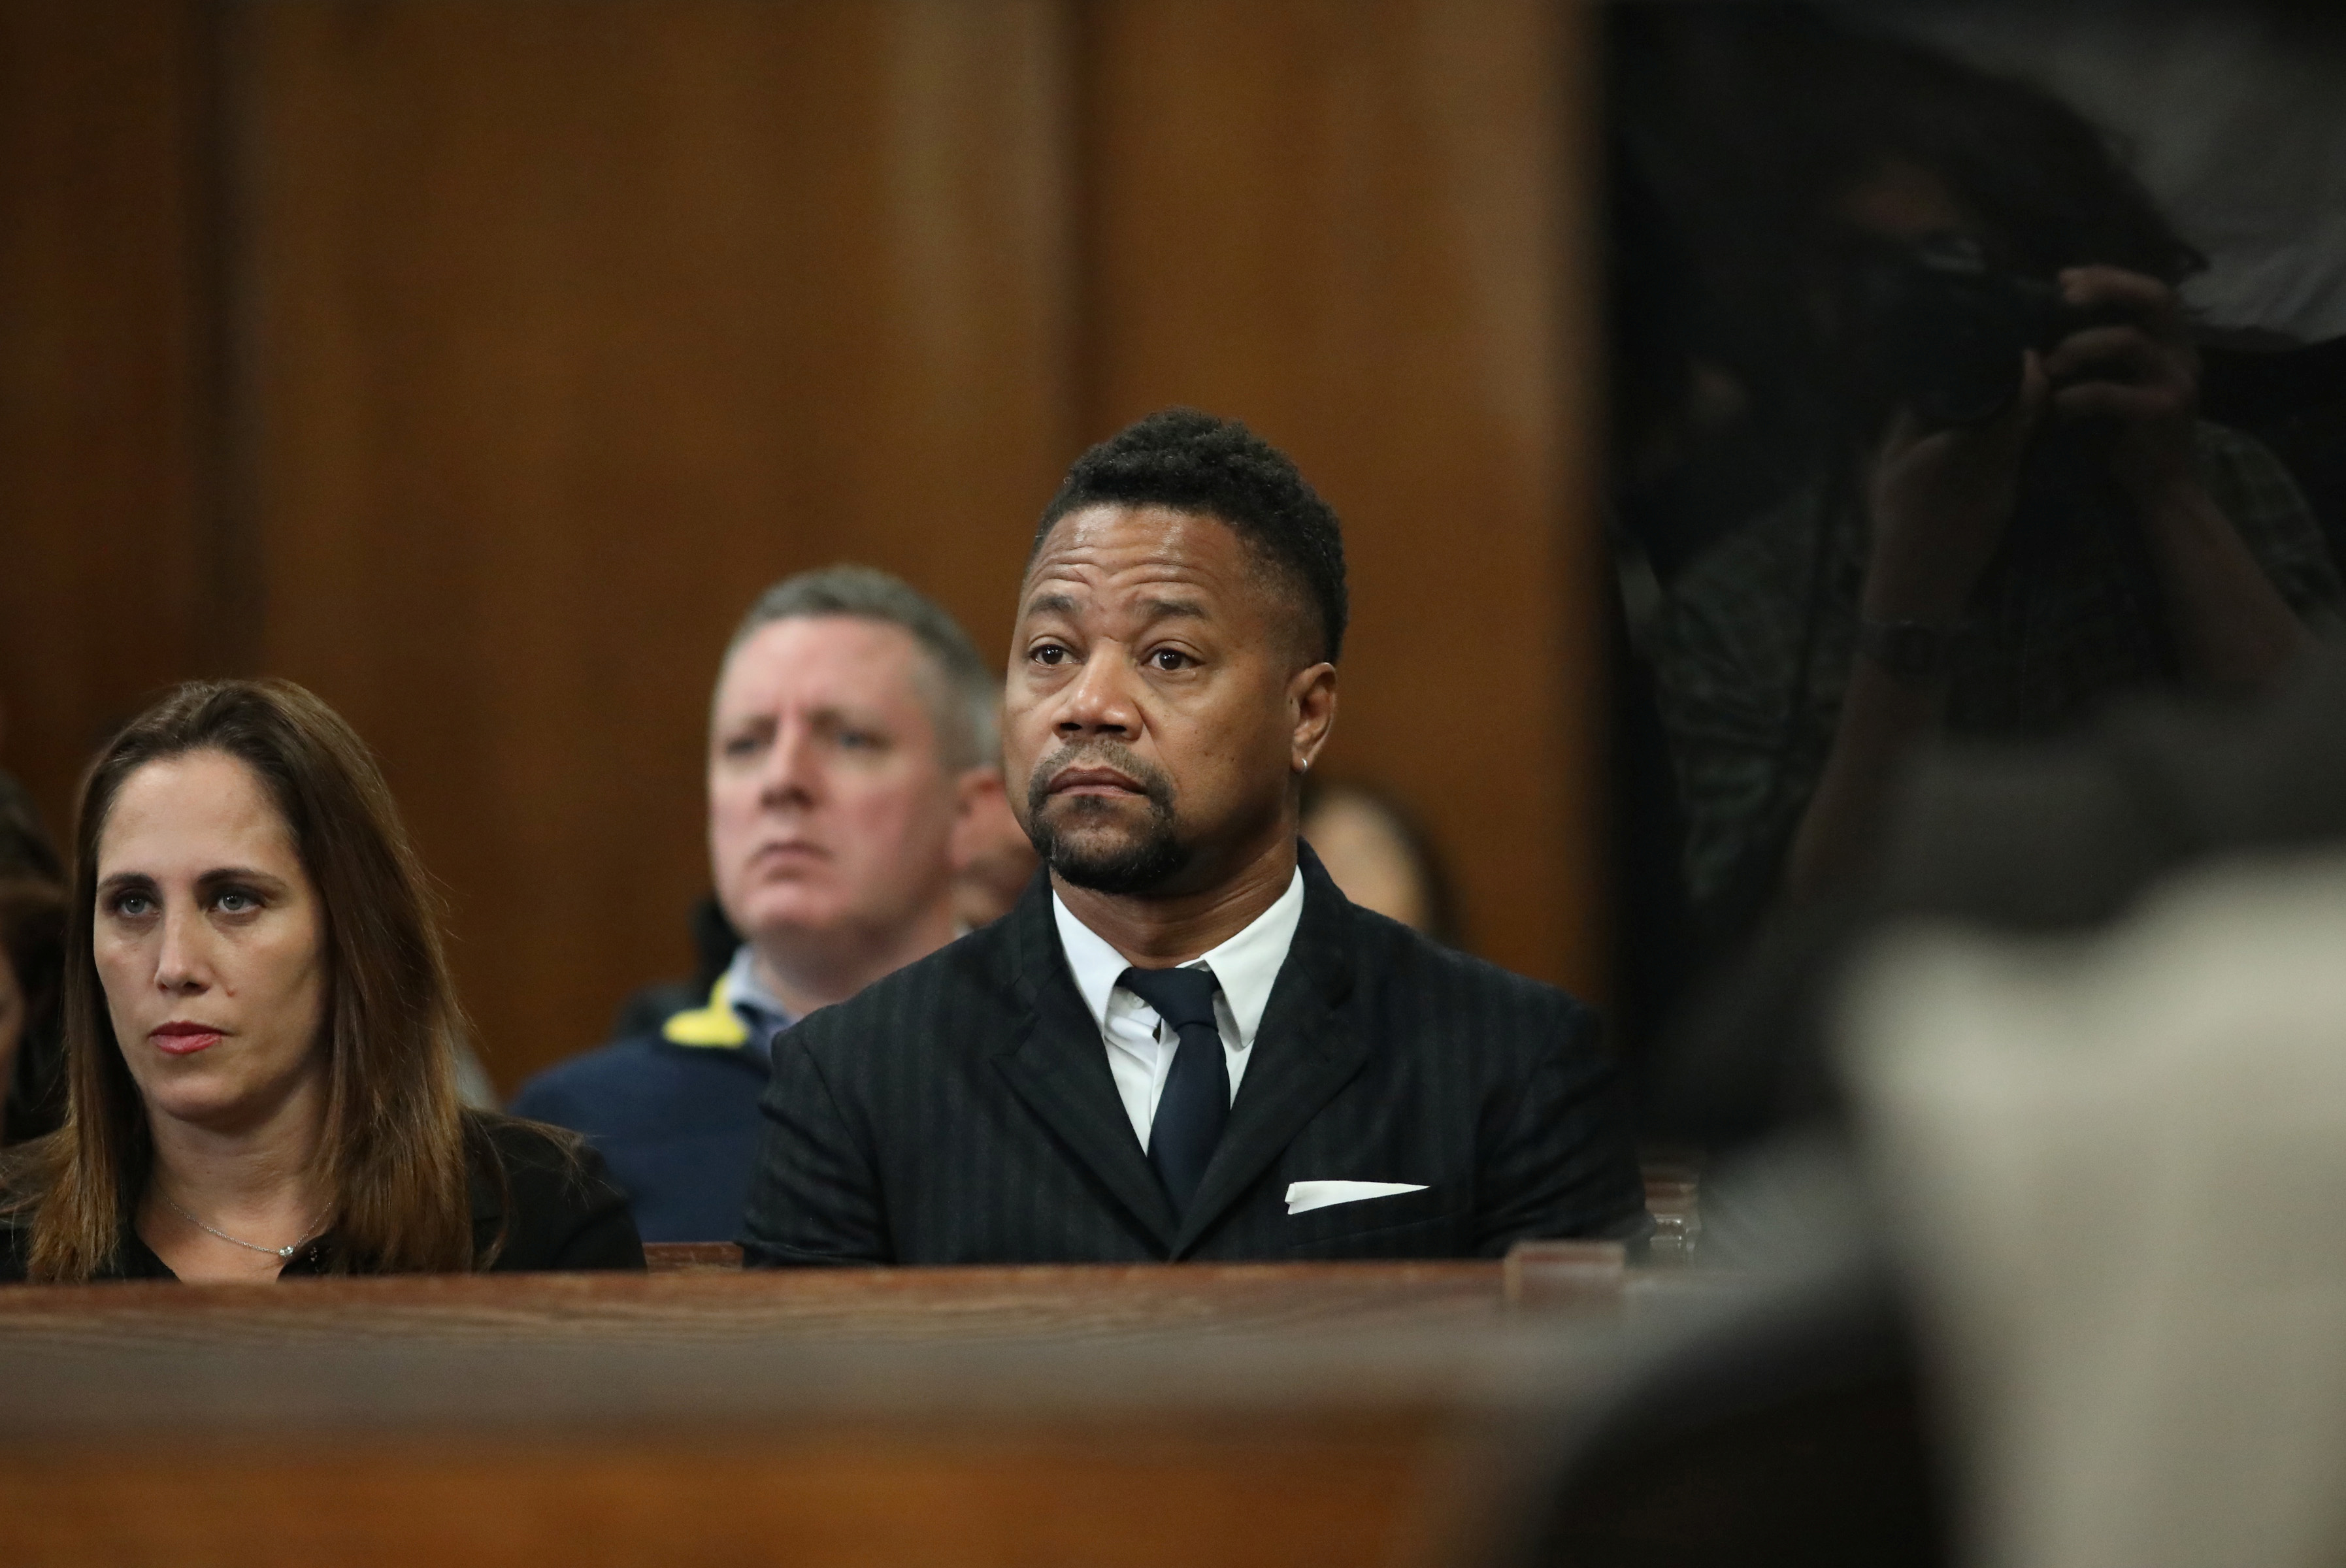 Actor Cuba Gooding Jr. appears in New York State Criminal Court in the Manhattan borough of New York, U.S.., October 10, 2019. Alec Tabak/Pool via REUTERS - RC1C5DB7DEE0